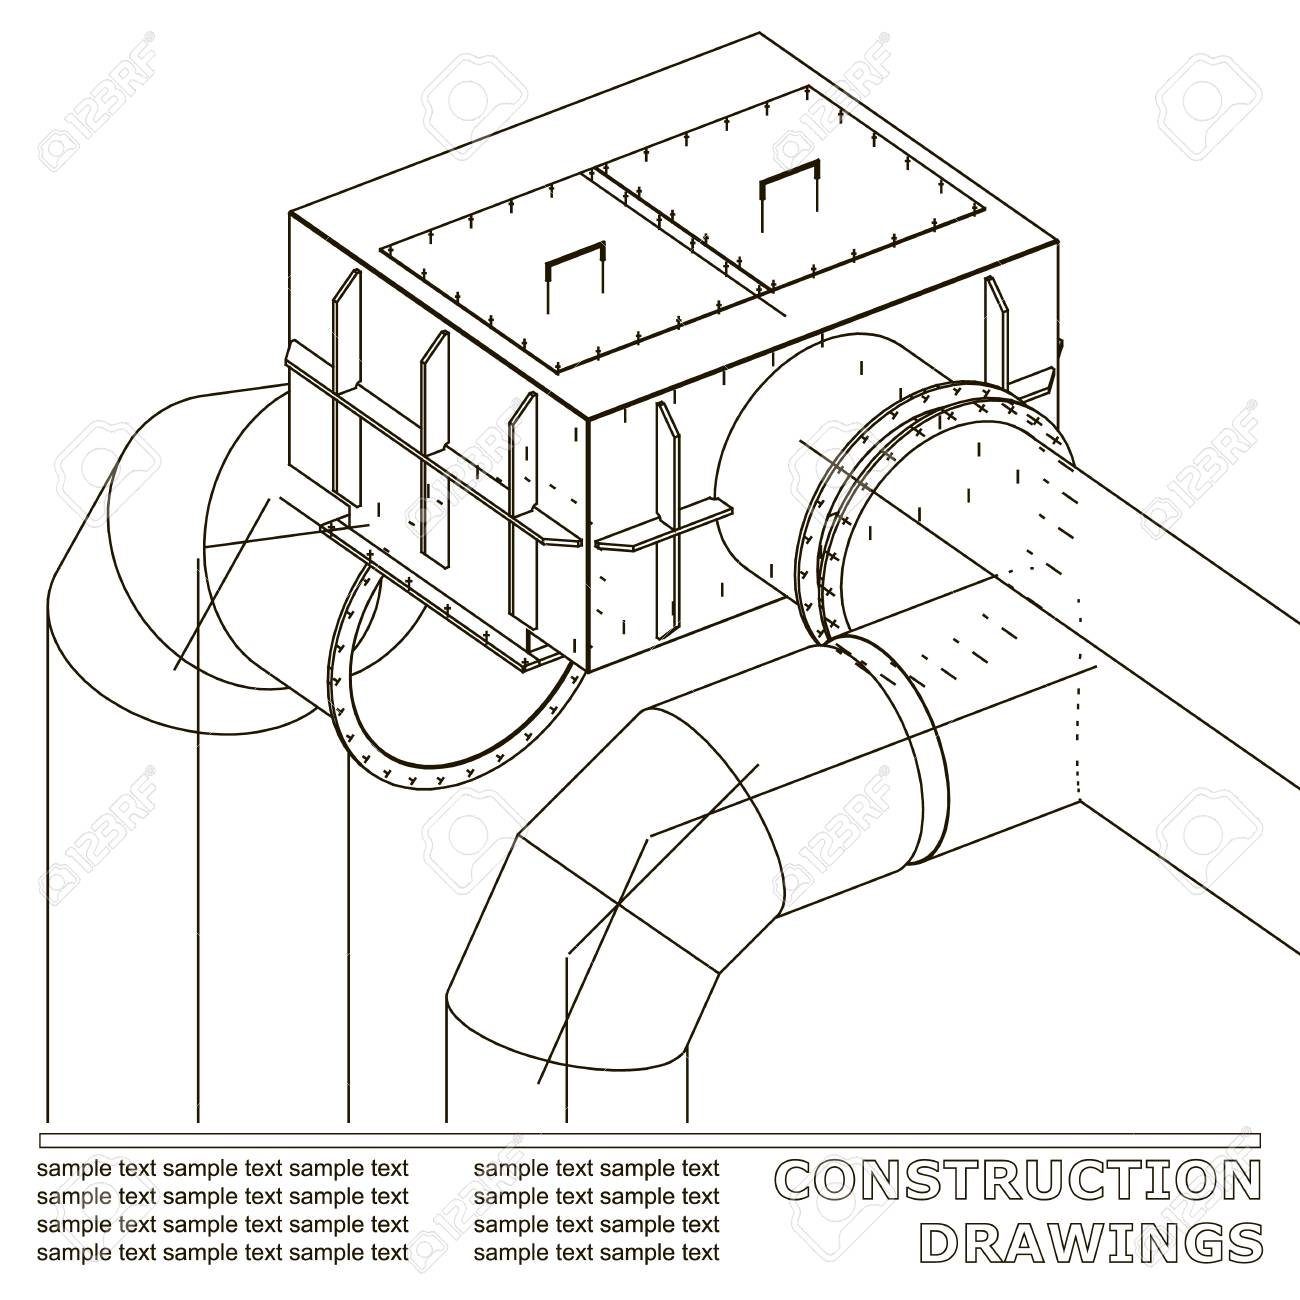 Drawings of steel structures pipes and pipe 3d blueprint of drawings of steel structures pipes and pipe 3d blueprint of steel structures white malvernweather Images